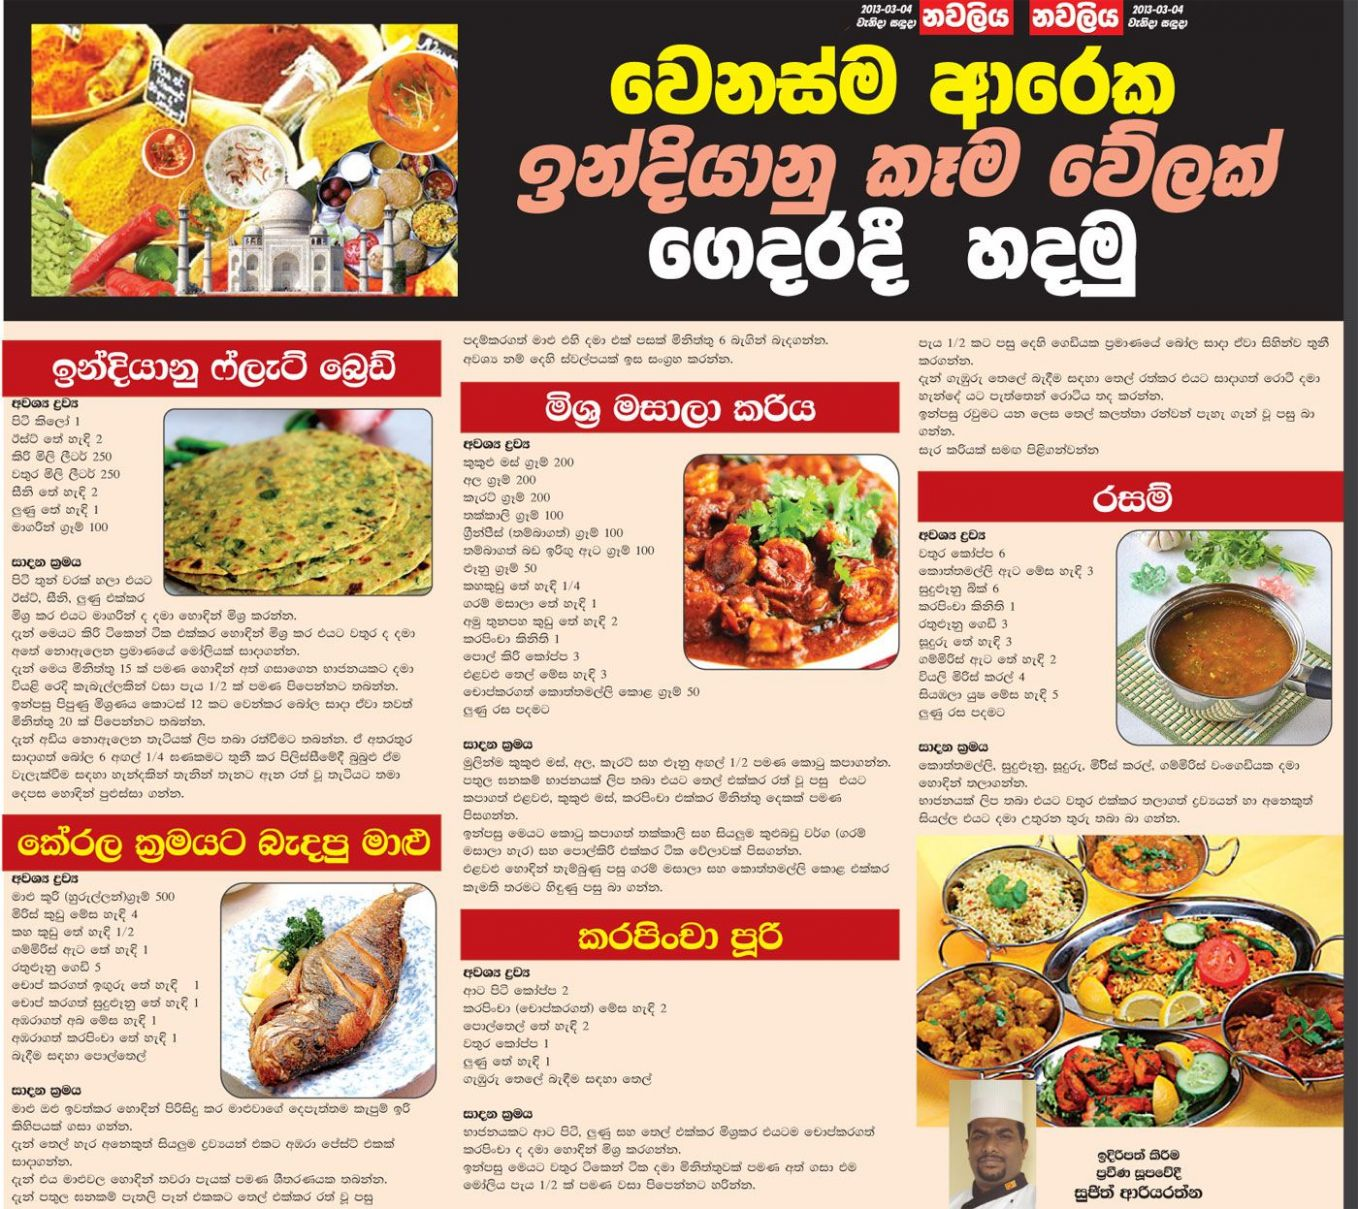 Sinhala Sri Lankan Foods Recipes Taste the difference. | India ...